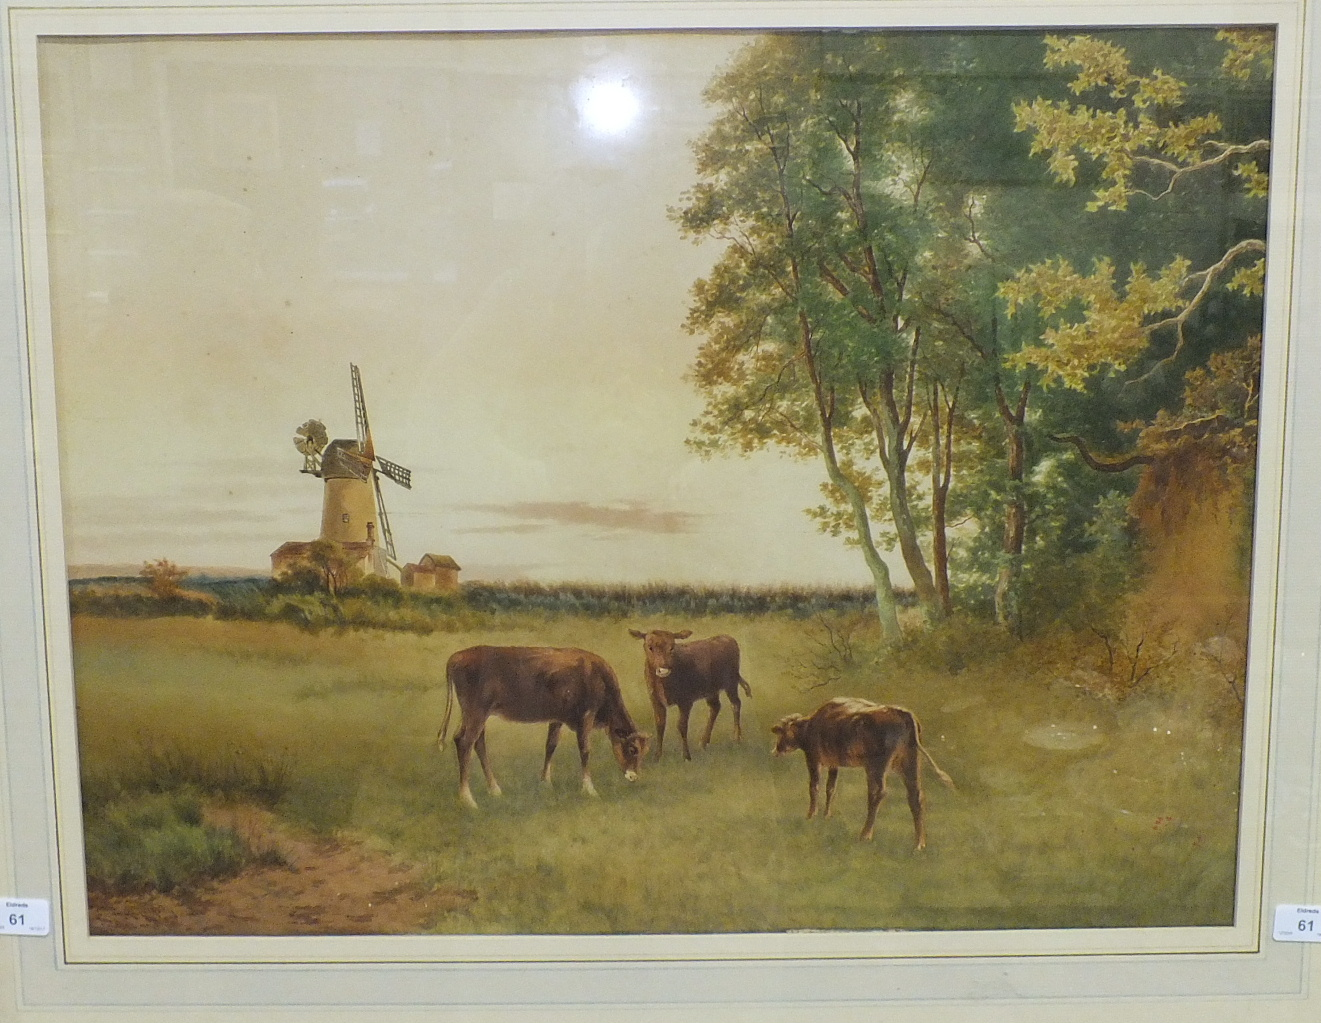 Lot 61 - Cattermole Cathrey (Late-19th century), 'Cattle in a landscape with windmill', signed watercolour,